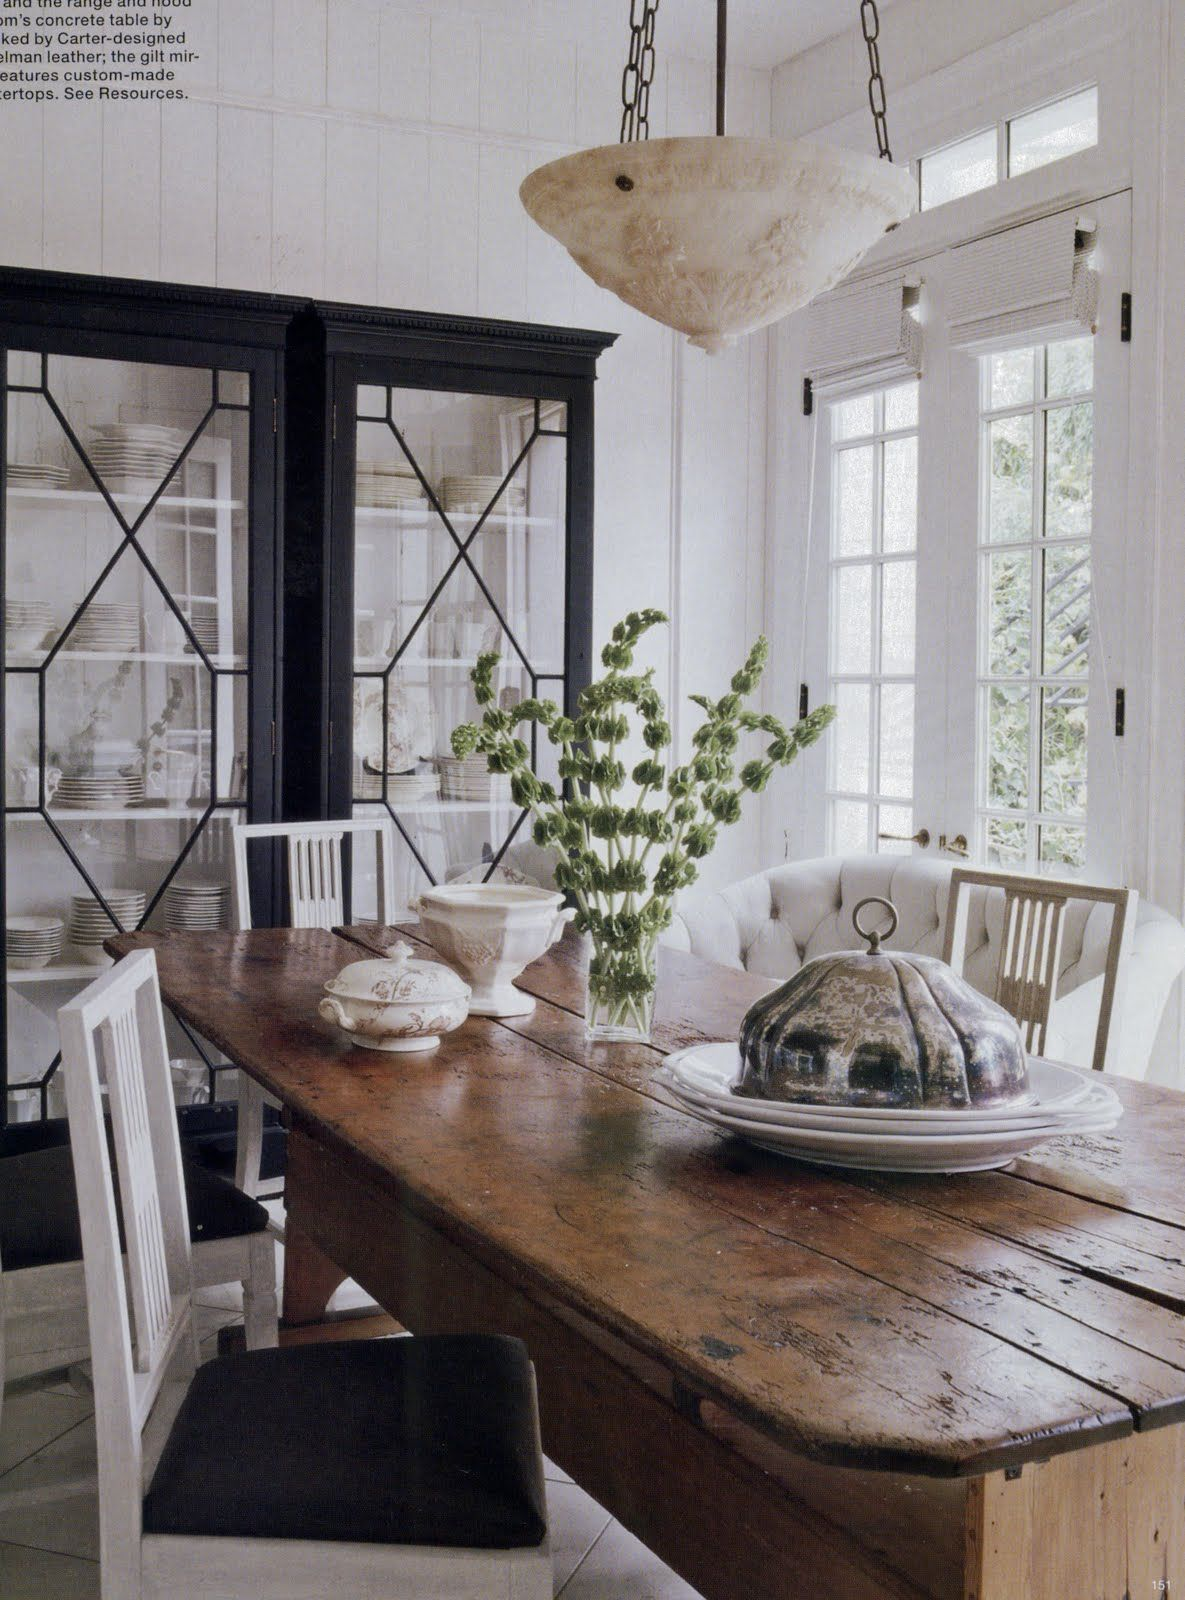 Nice mix of contemporary with rustic love the antique farm table